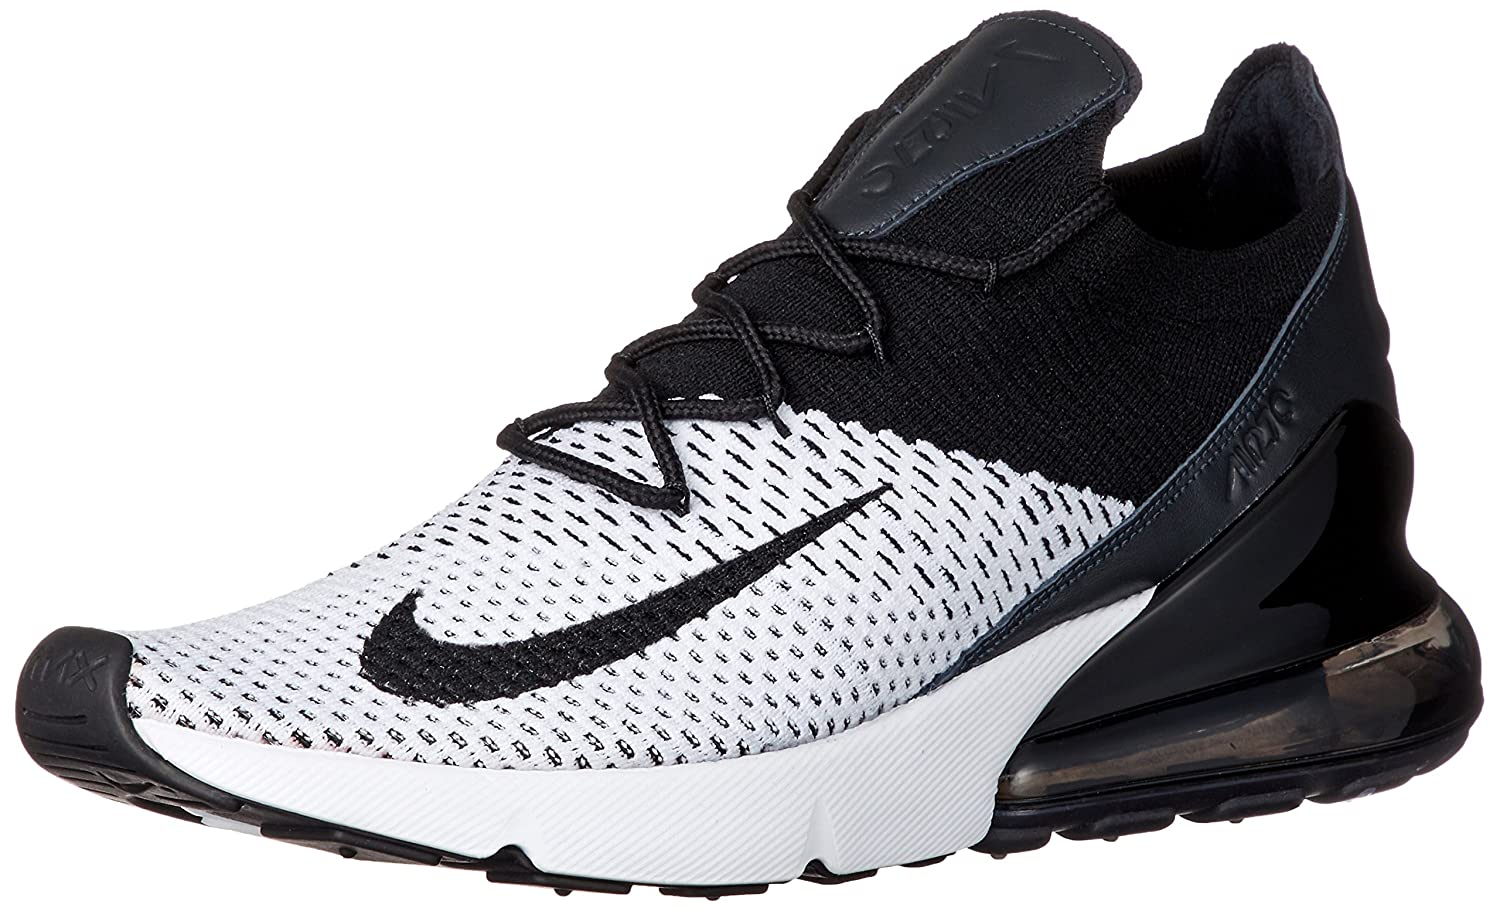 NIKE Men's Air Max 270 Flyknit Nylon Basketball Shoes B07D5N3B7R 11.5 D(M) US|White/Black-anthracite